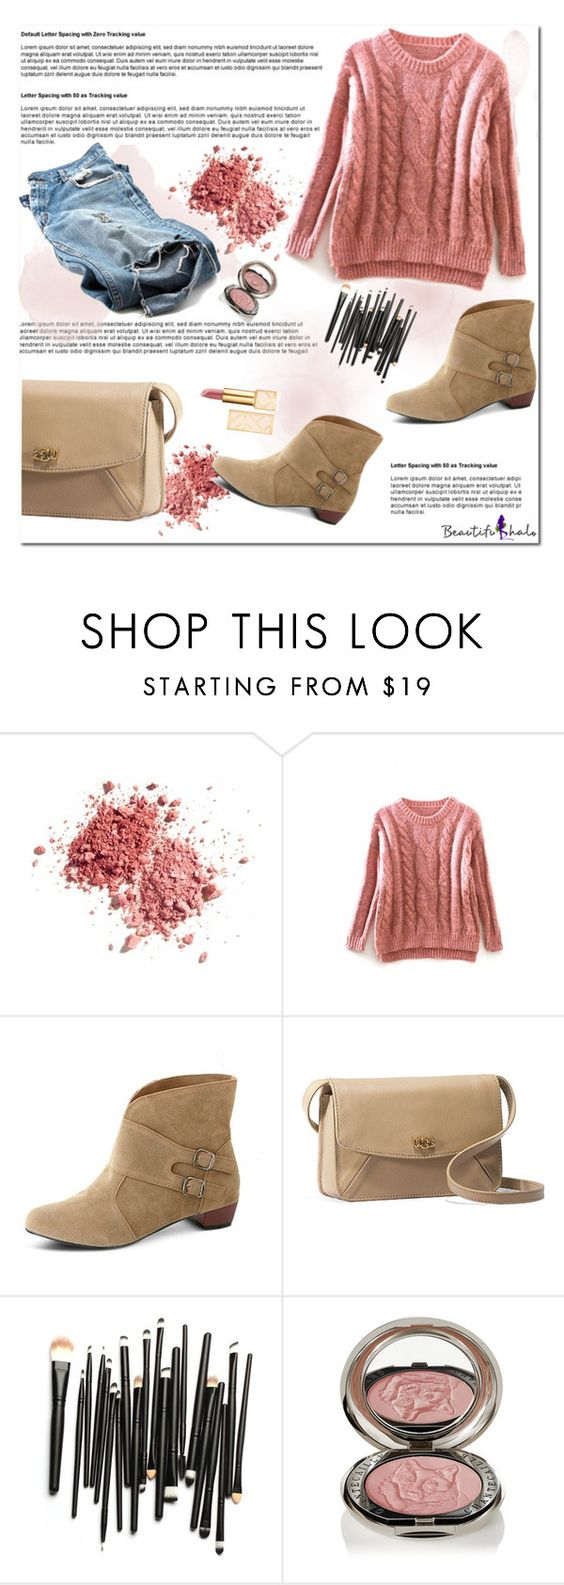 """""""Beautifulhalo 2"""" by melodibrown ❤ liked on Polyvore featuring UGG Australia, Chantecaille, Tory Burch and bhalo"""